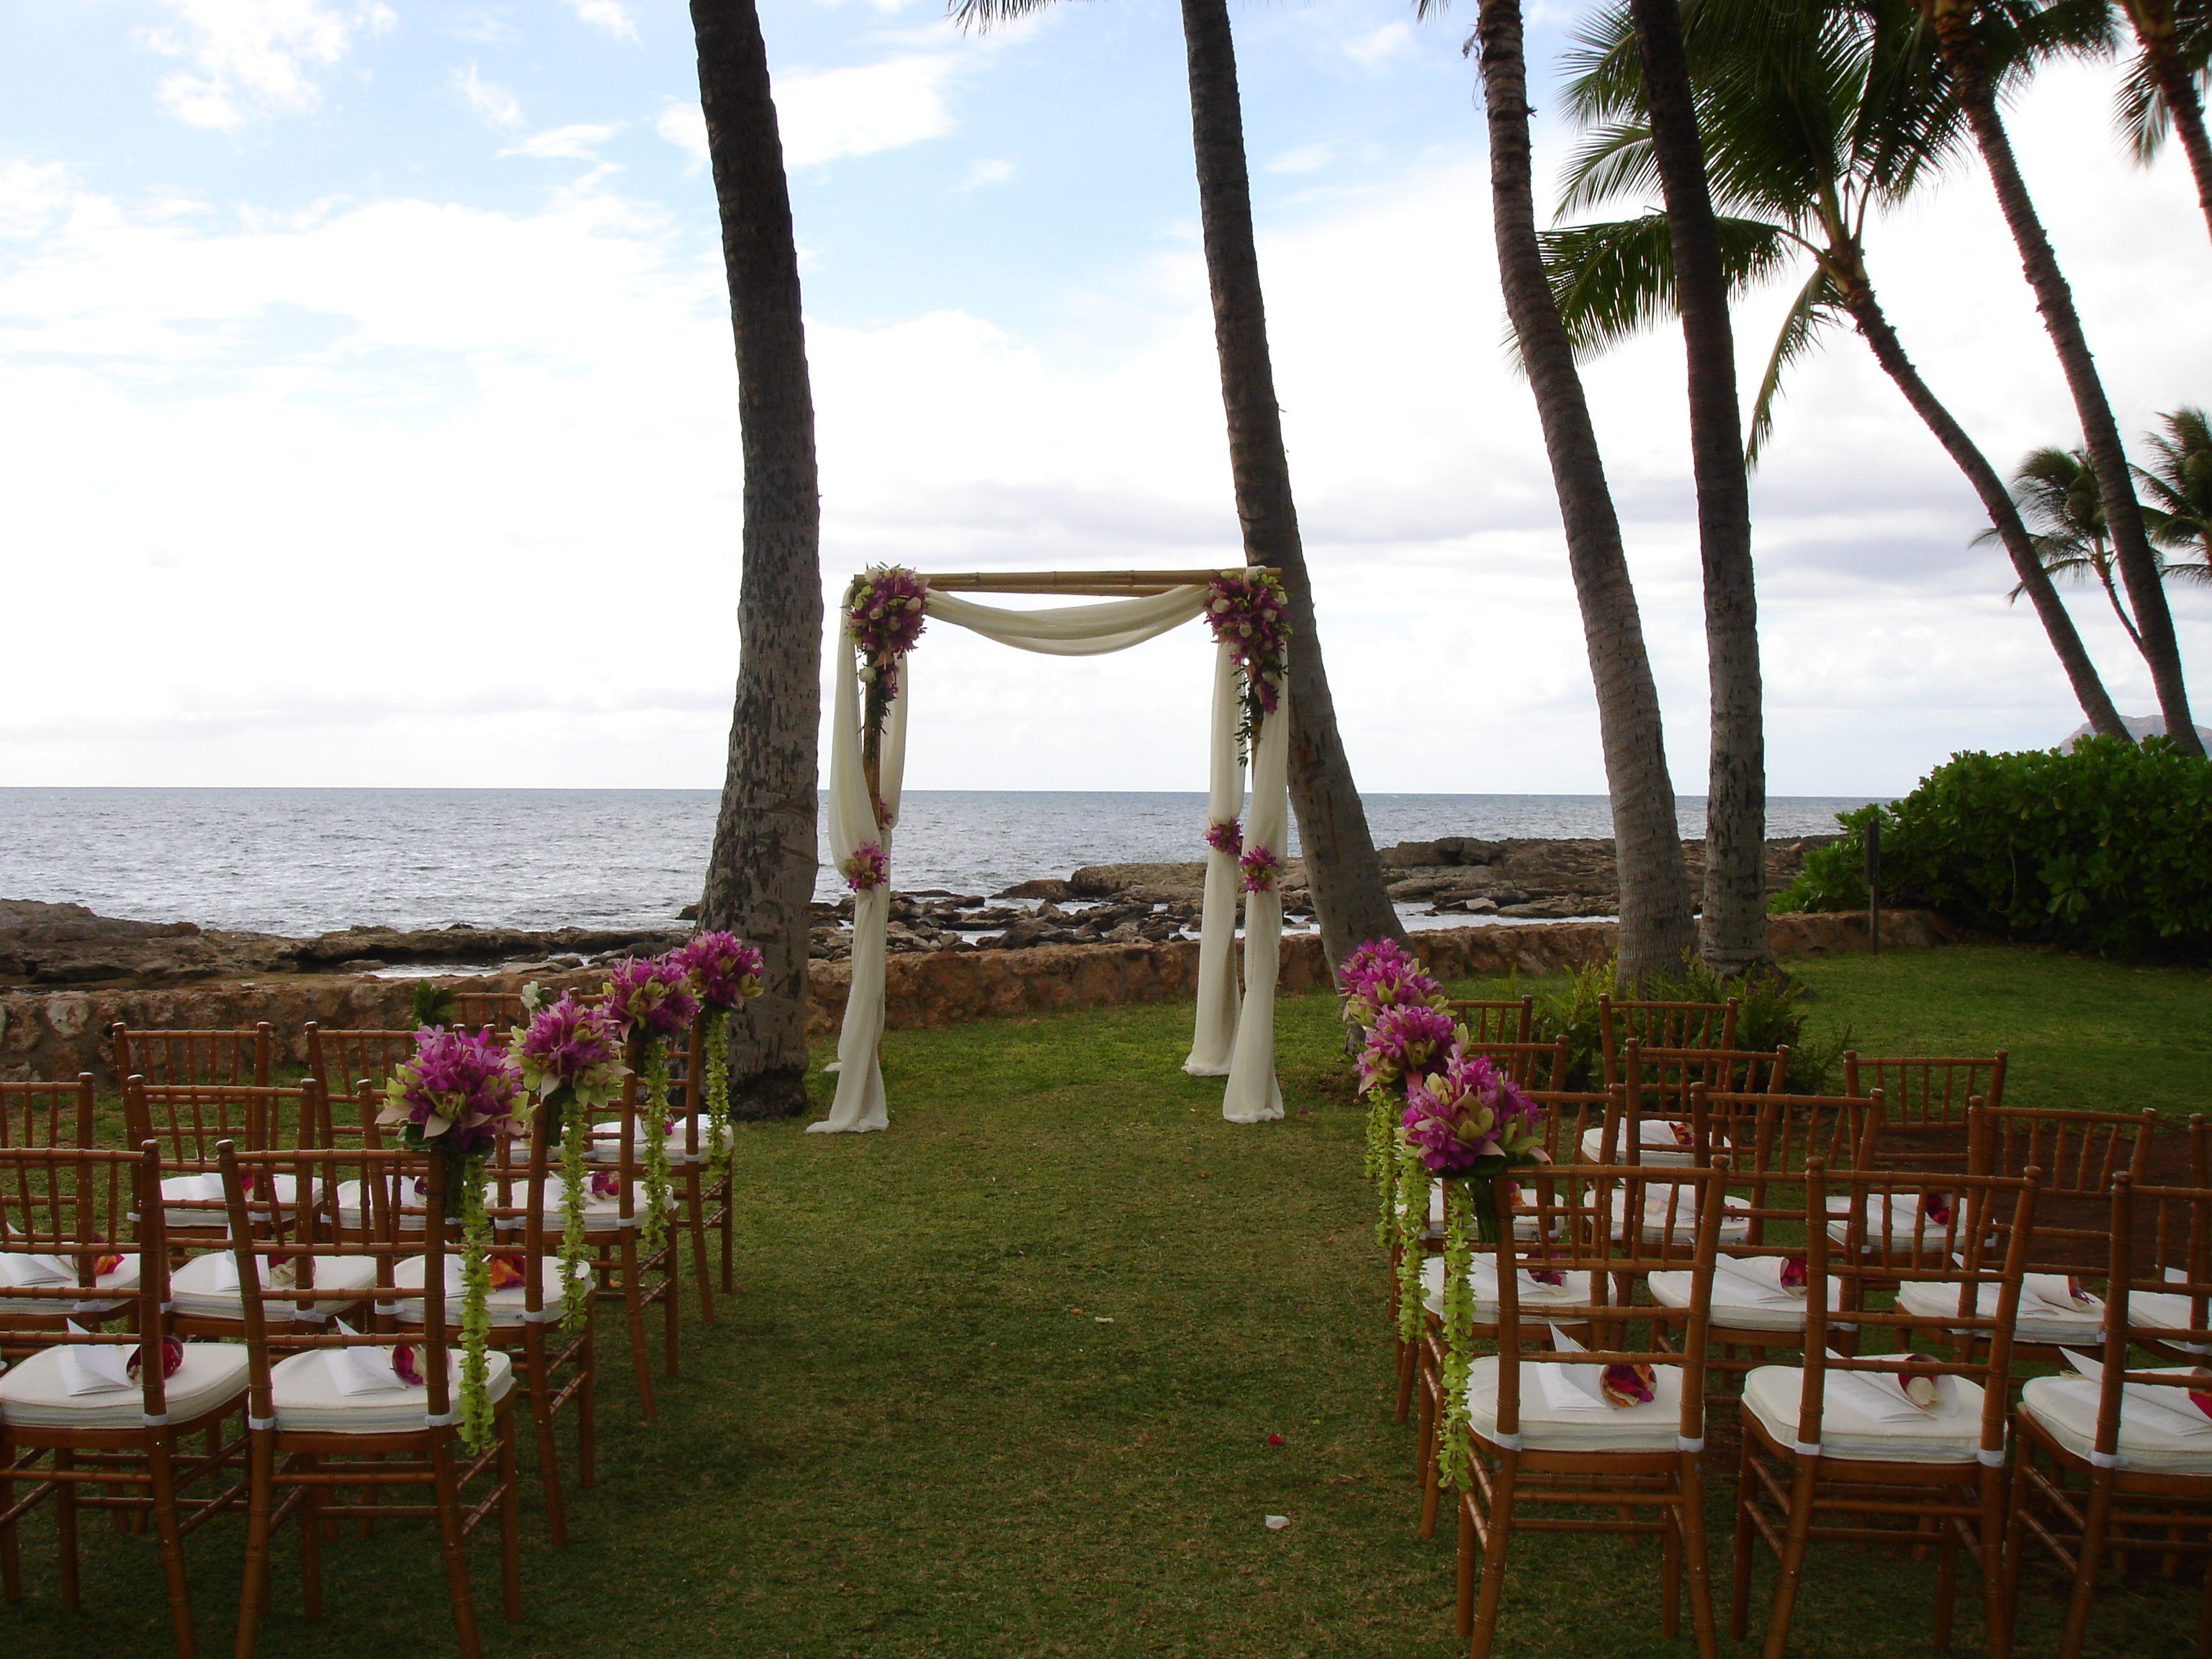 Ceremony, Flowers & Decor, Tables & Seating, Chiavari, Chairs, Florals, Lanikuhonua